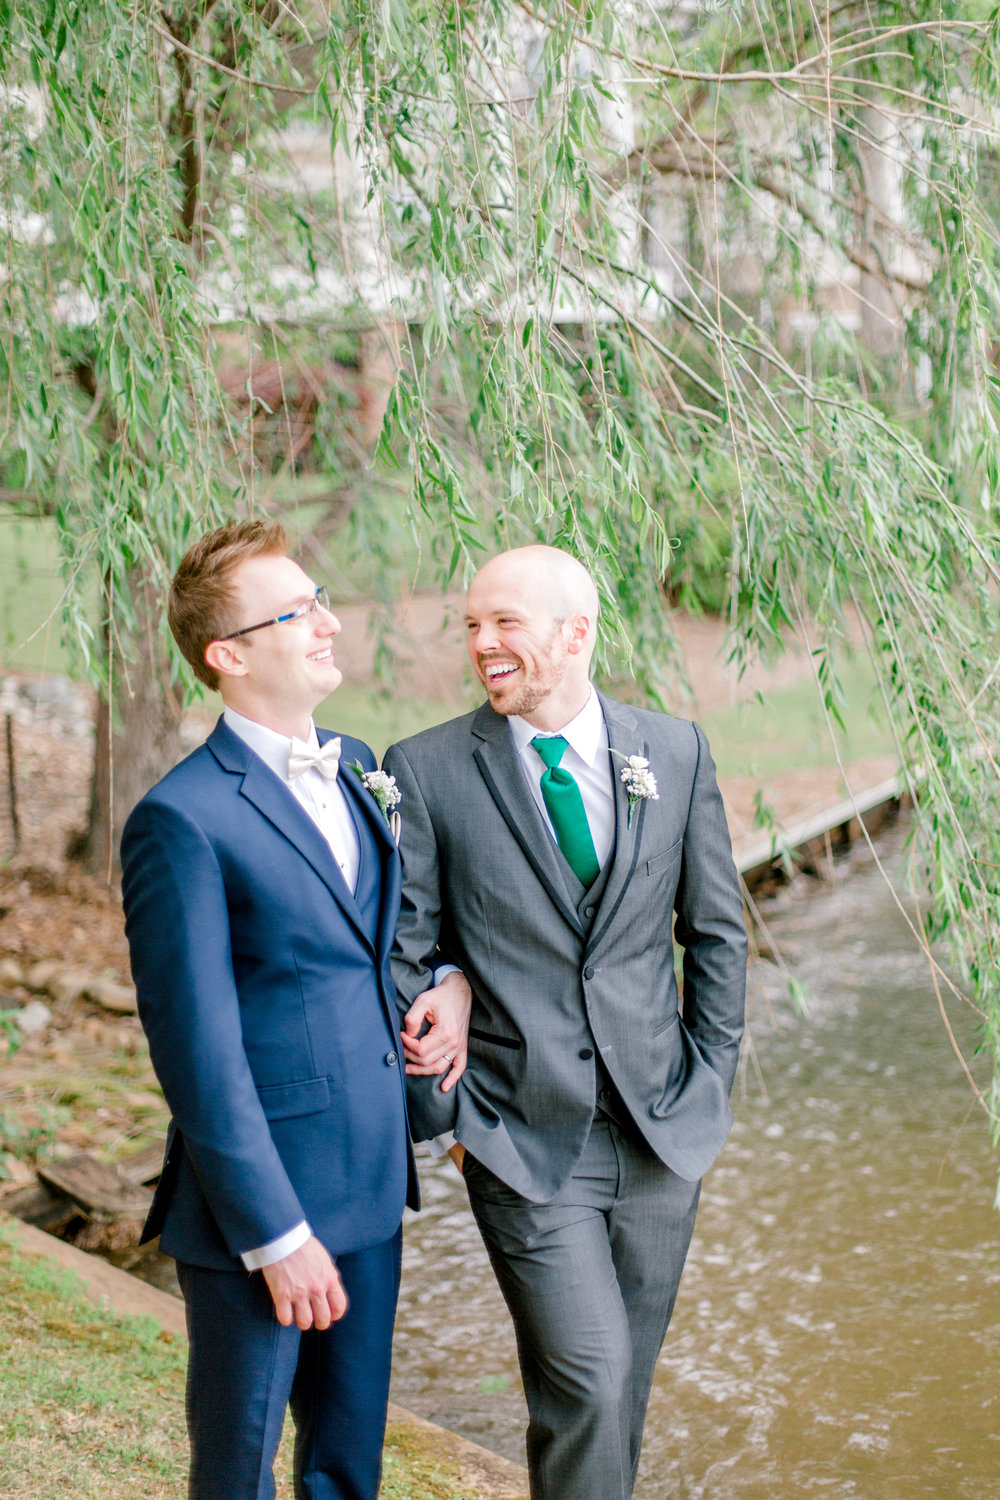 jessica sgubin photography atlanta portrait photographer cacti garden engagement family couple wedding joshua tree wedding elopement-1-5.jpg